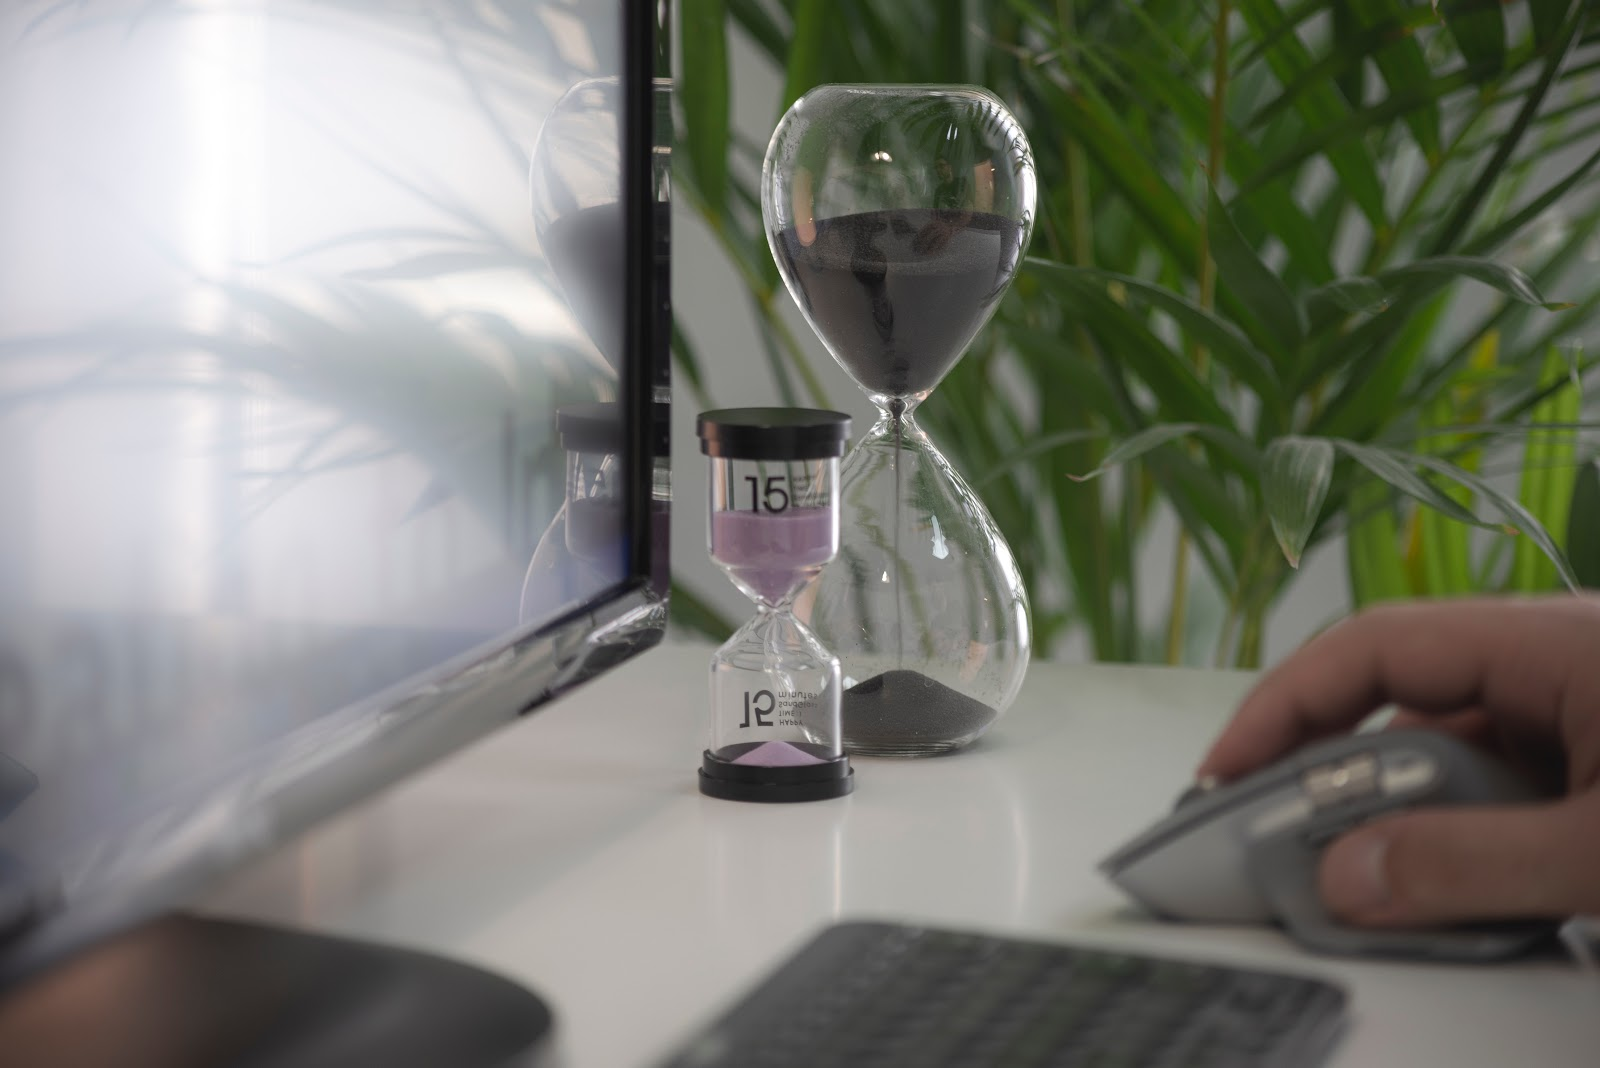 5 Tips on Introducing Time Tracking Software in your Workplace